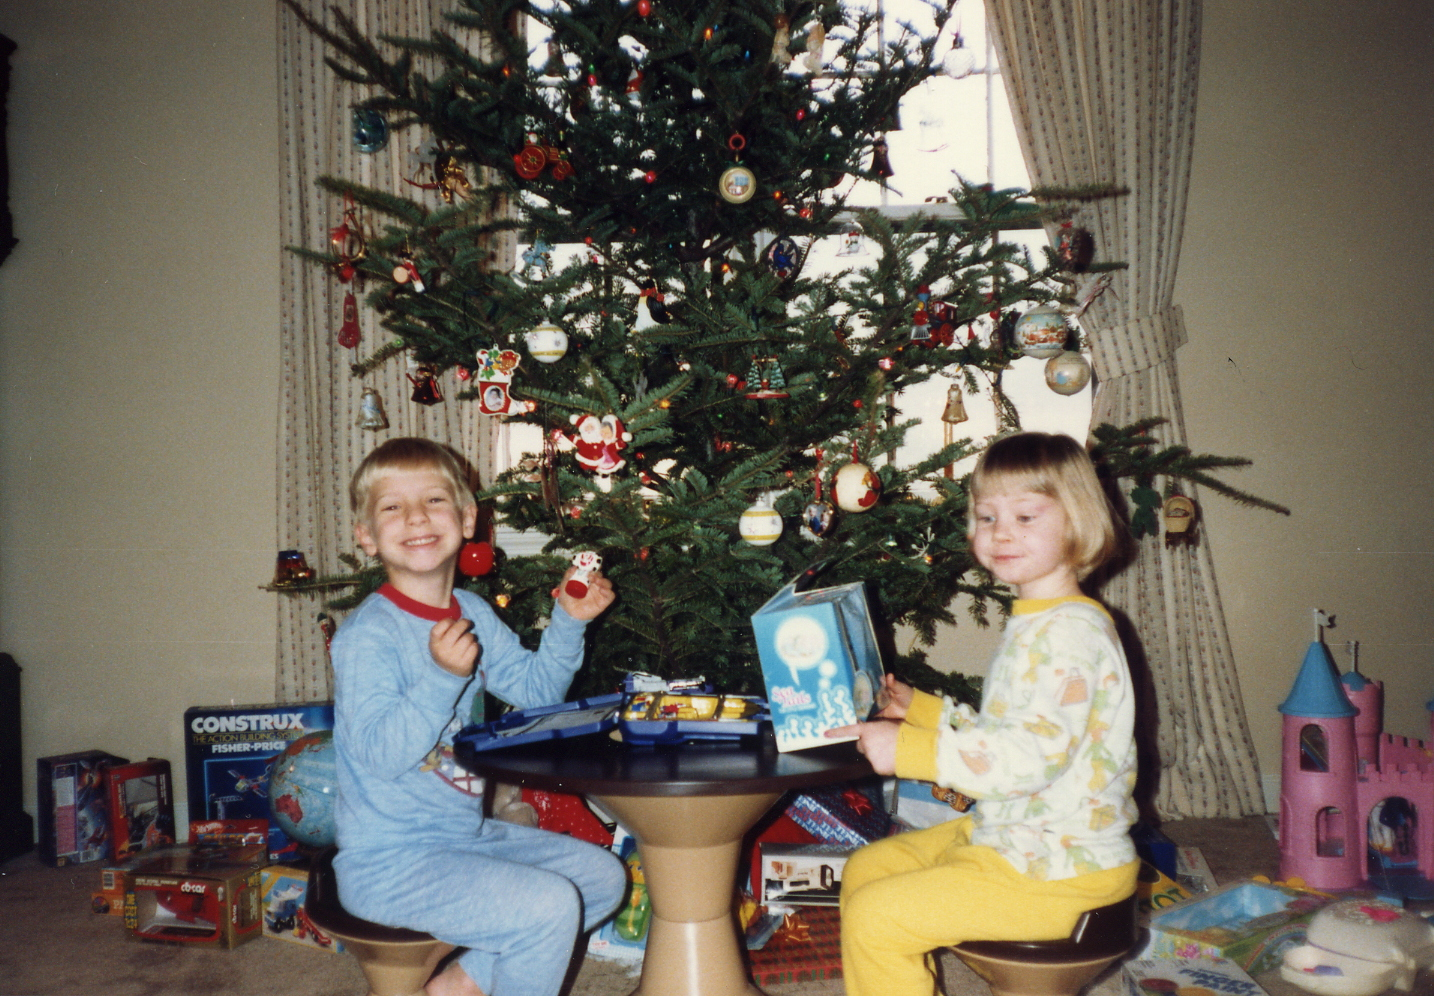 What day to take christmas decor down - But Whichever Type Tree We Put Up Our Tradition Was That Most Presents Would Not Appear Under The Tree Until After Santa Had Arrived On Christmas Morning